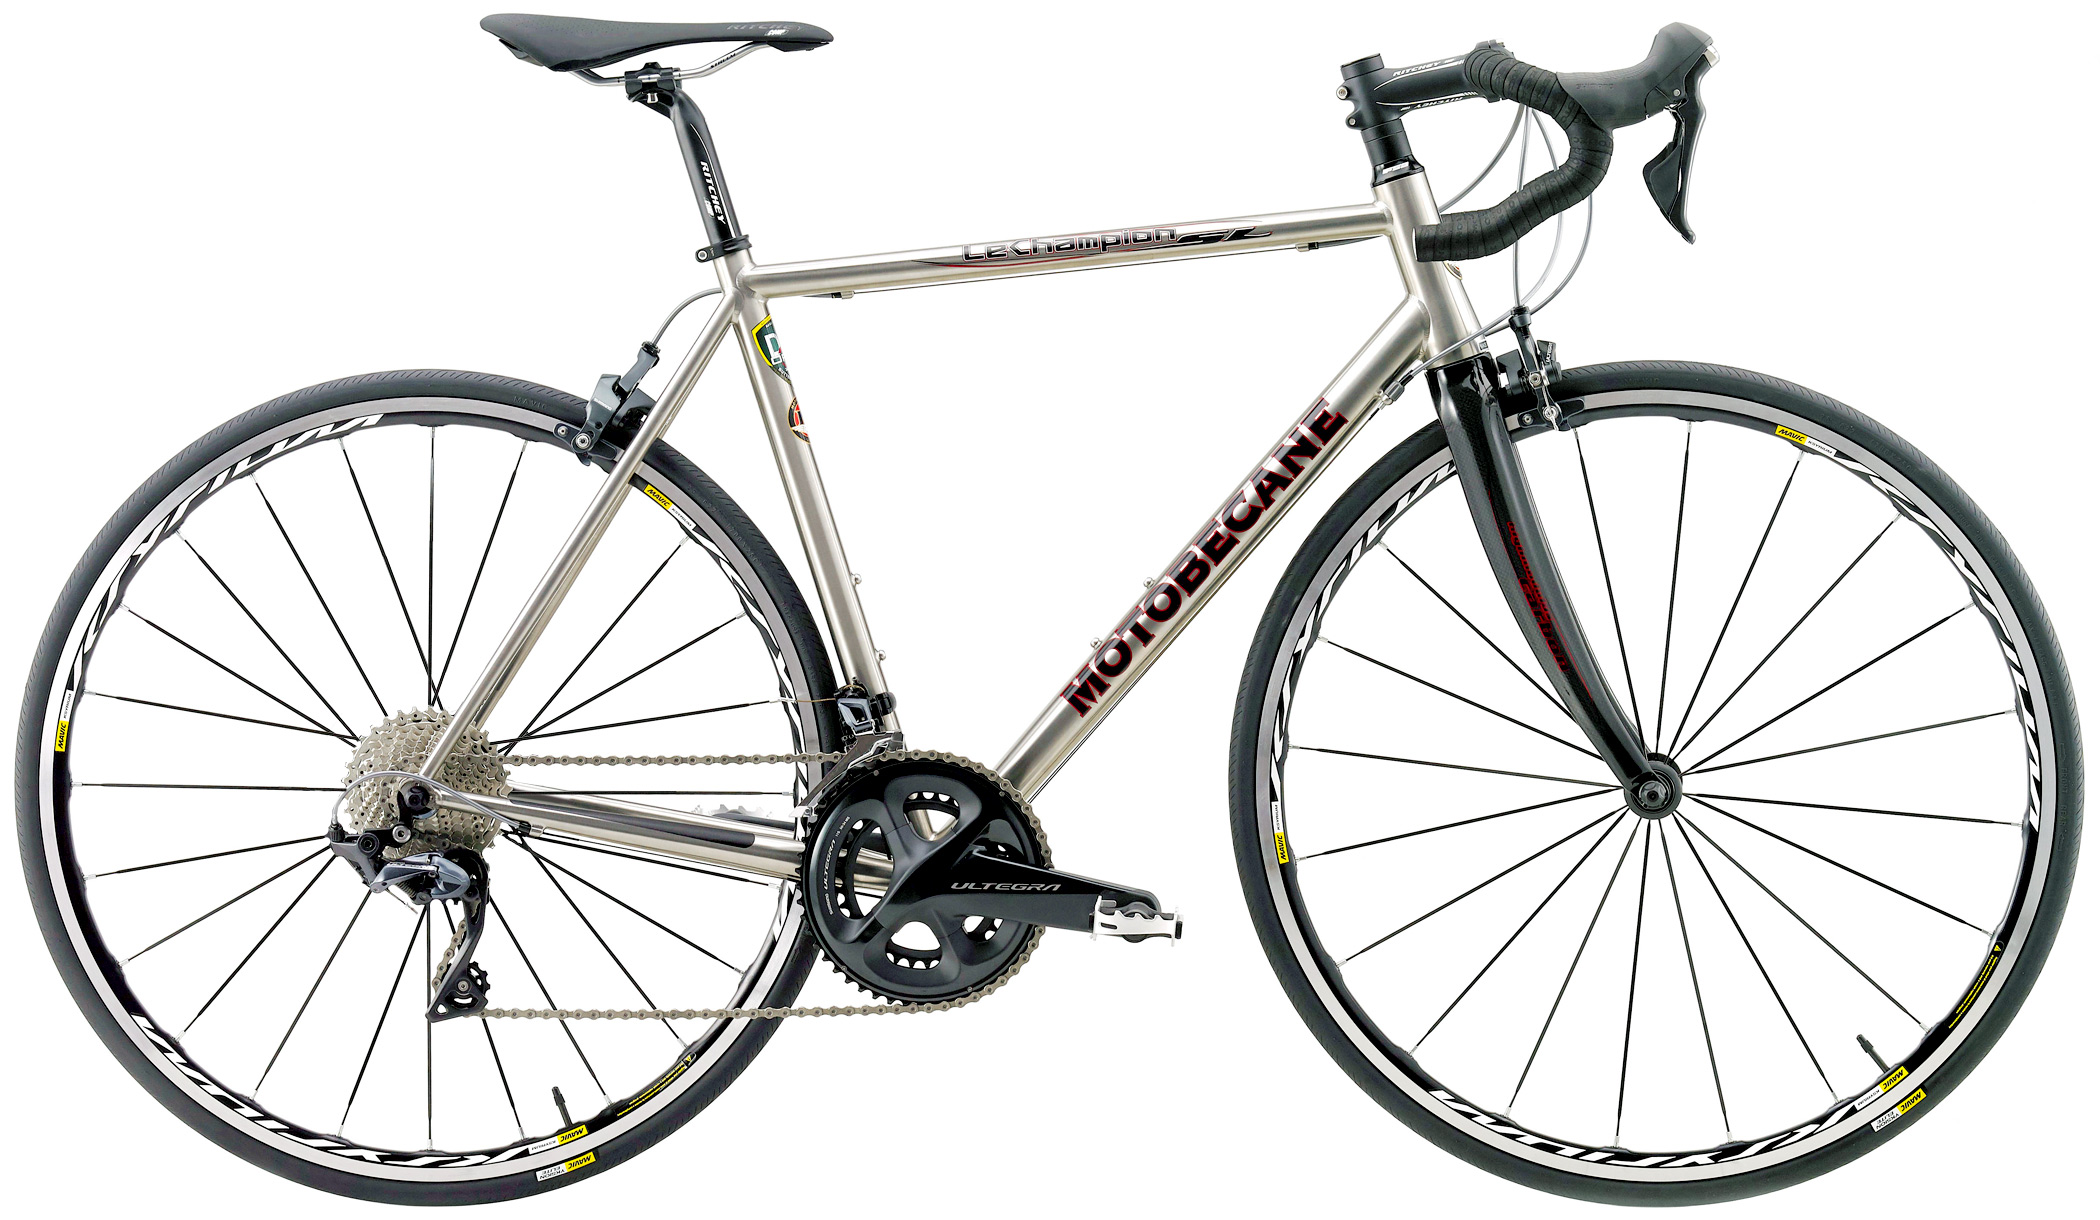 Save Up To 60% Off Titanium Shimano Ultegra Road Bikes